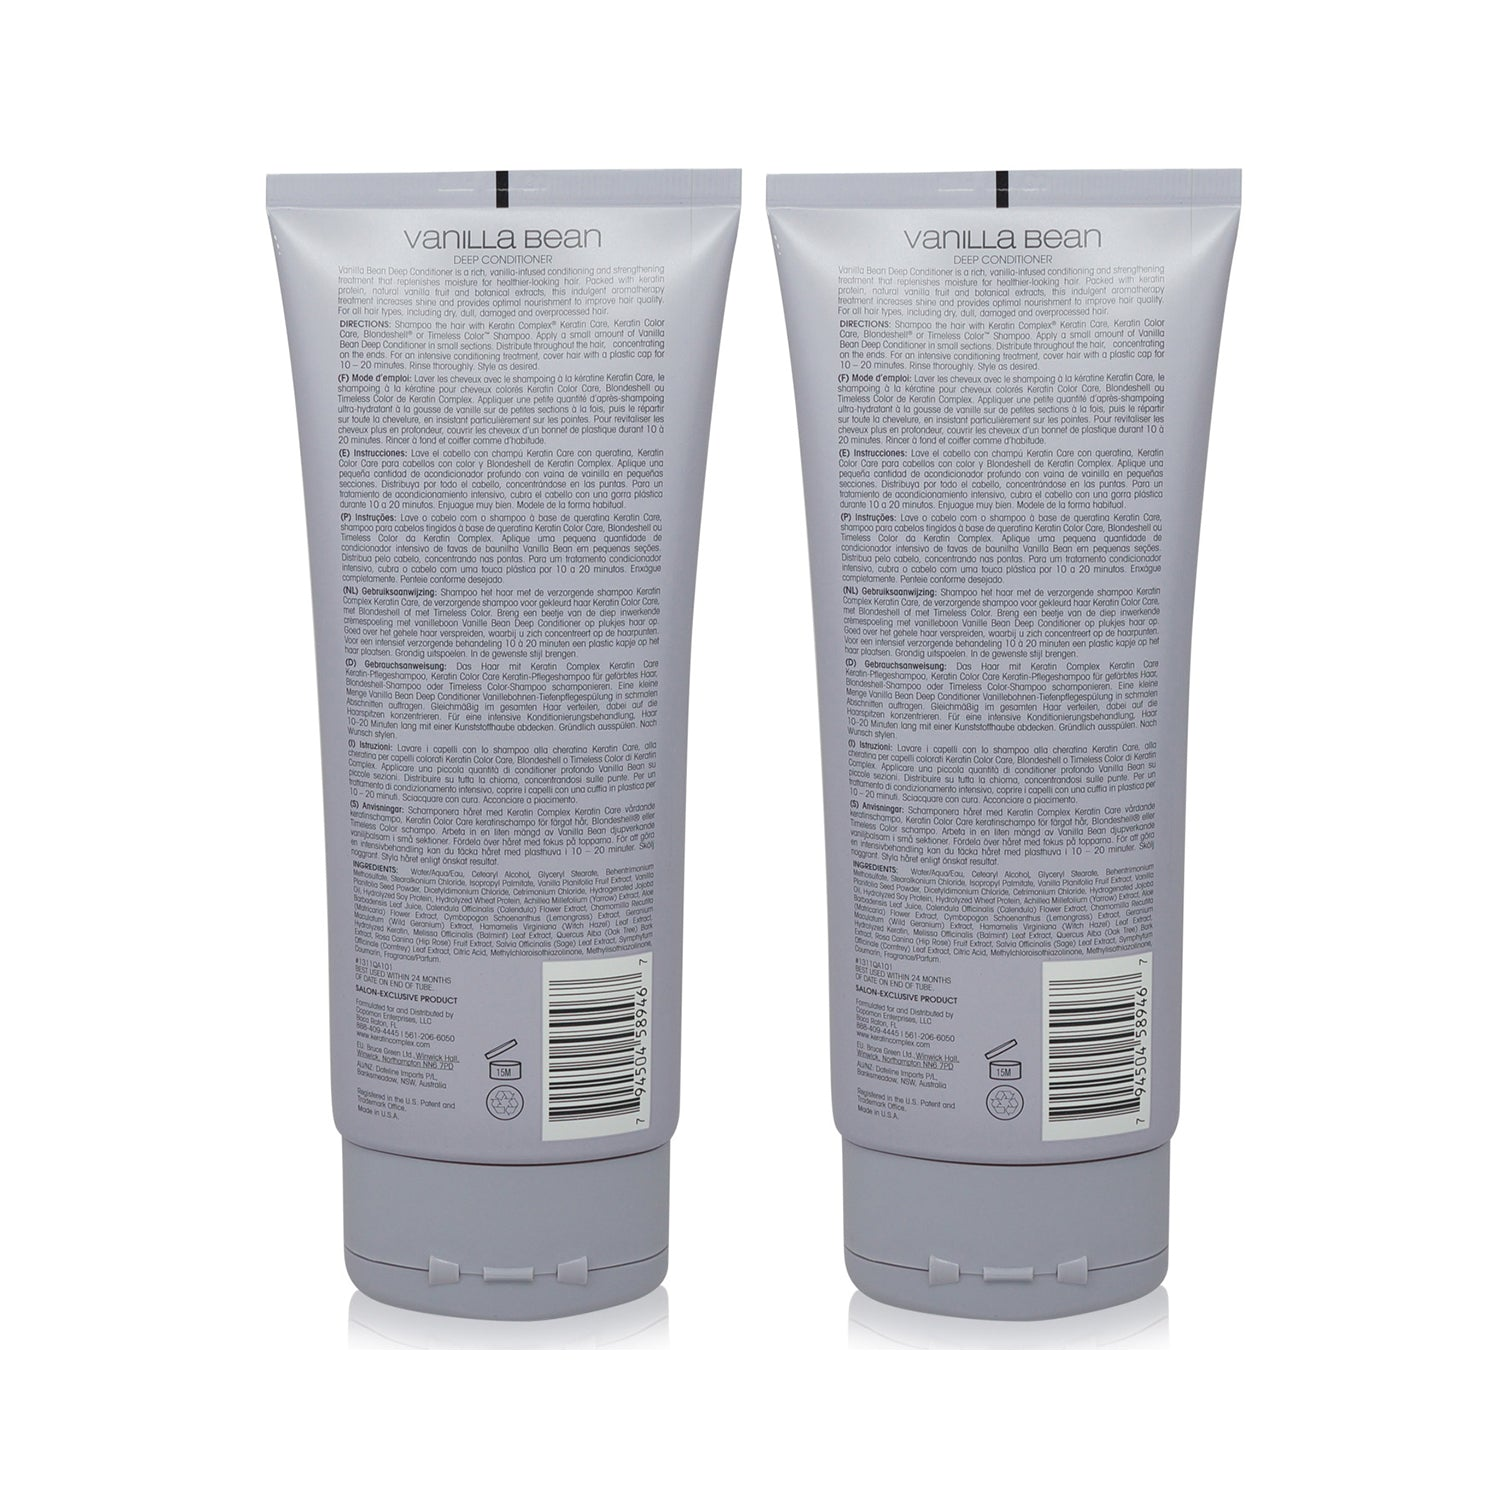 Keratin Complex Vanilla Bean Conditioner 7oz- 2 Pack